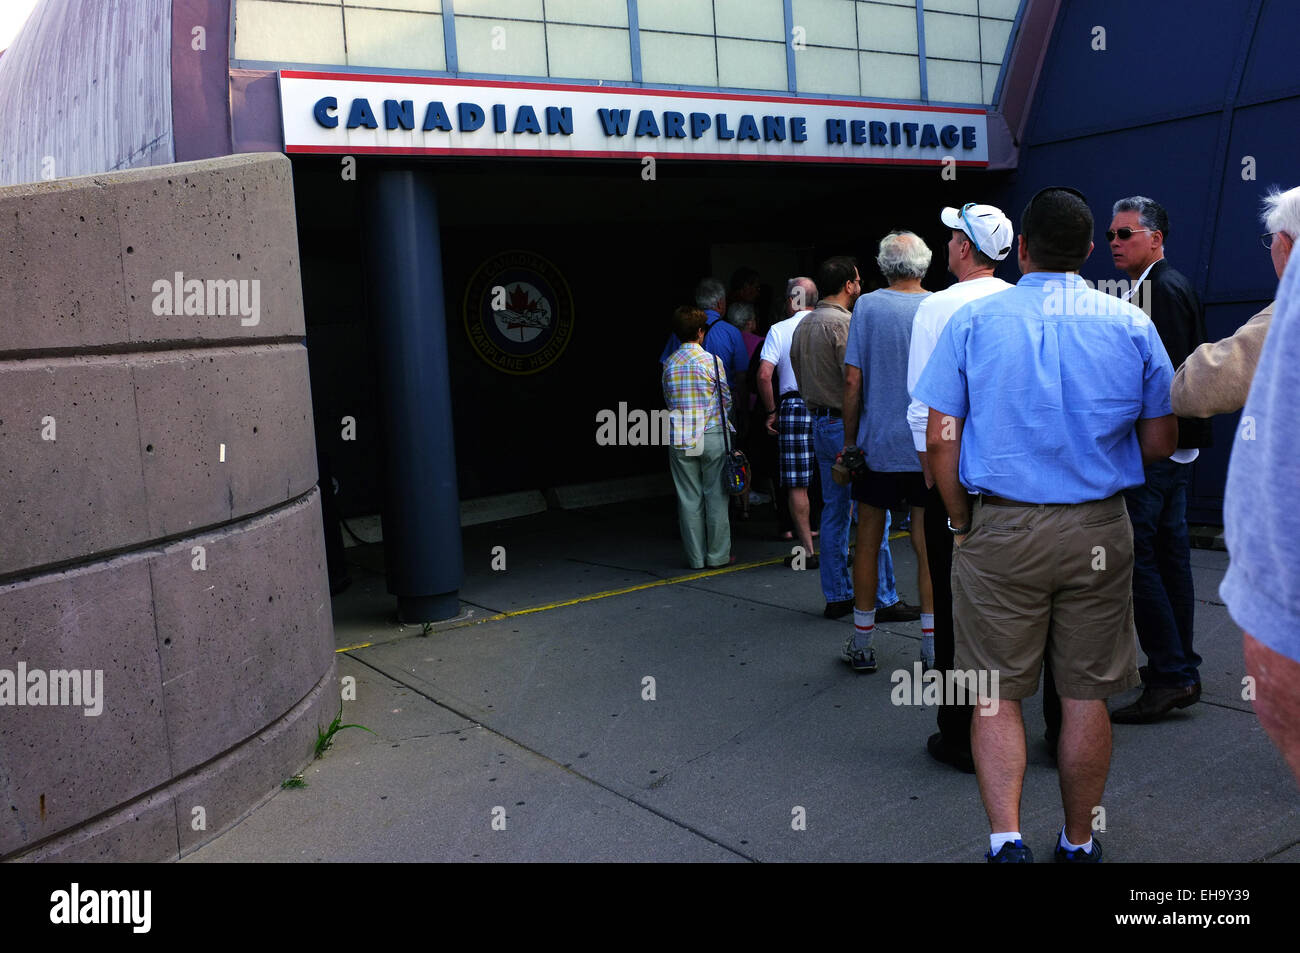 People wait to enter the Canadian Warplane Heritage Museum in Hamilton, Ontario in Canada. - Stock Image